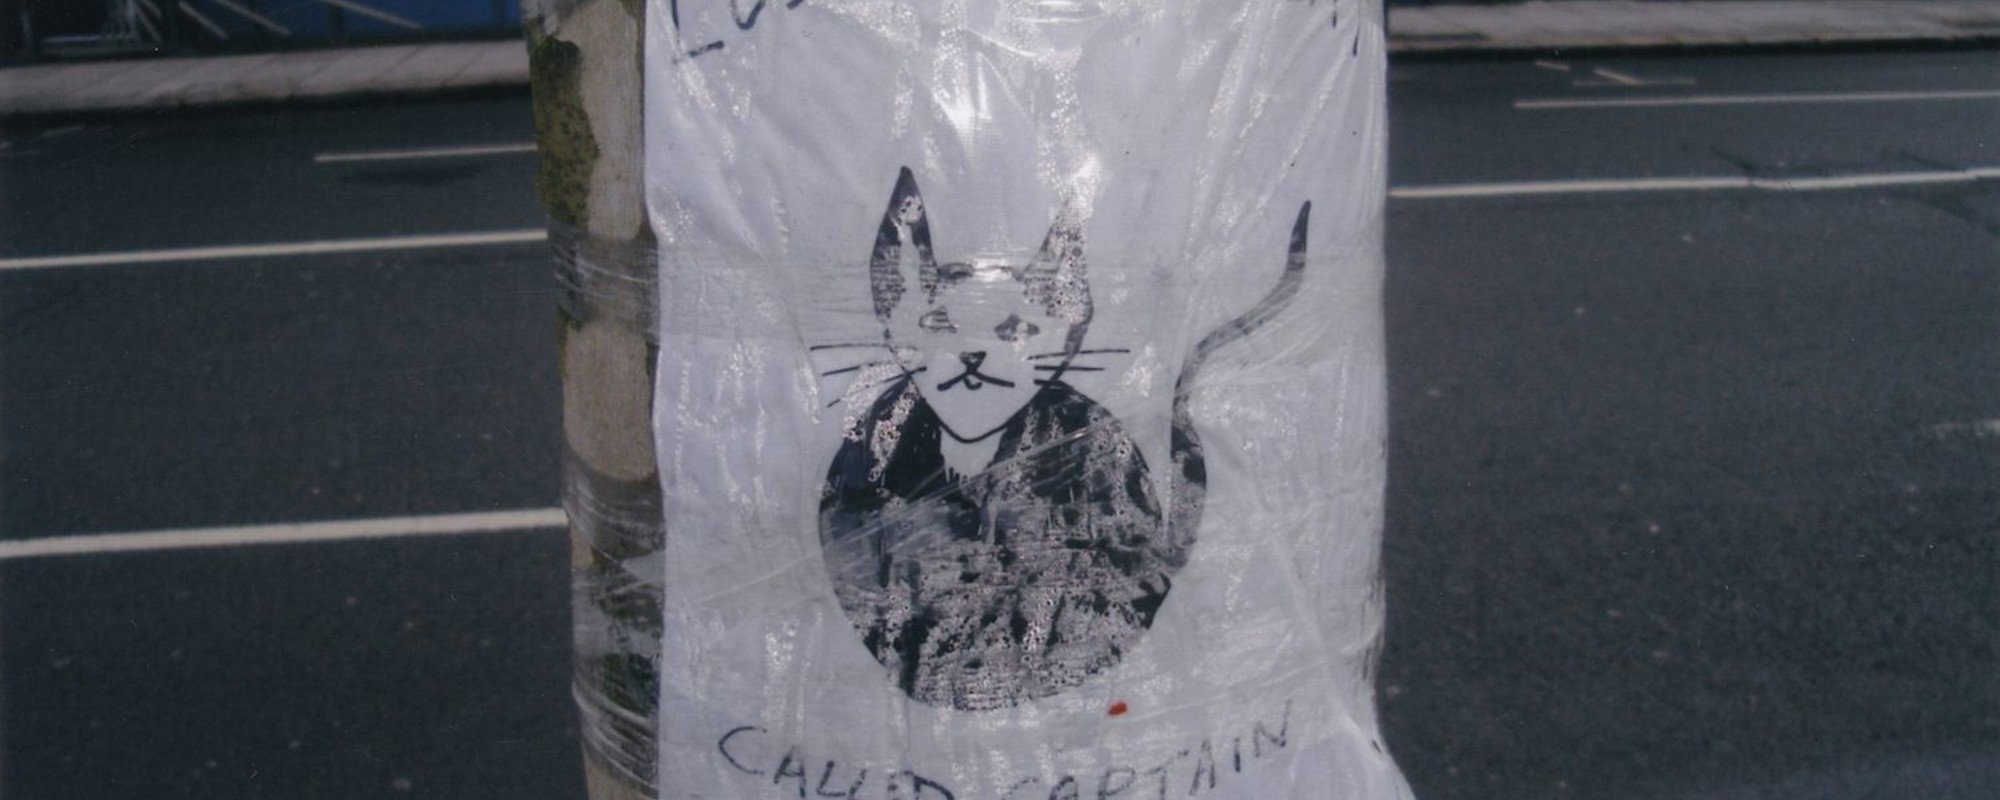 I Spent Ten Years Taking Photos of Lost-Cat Notices